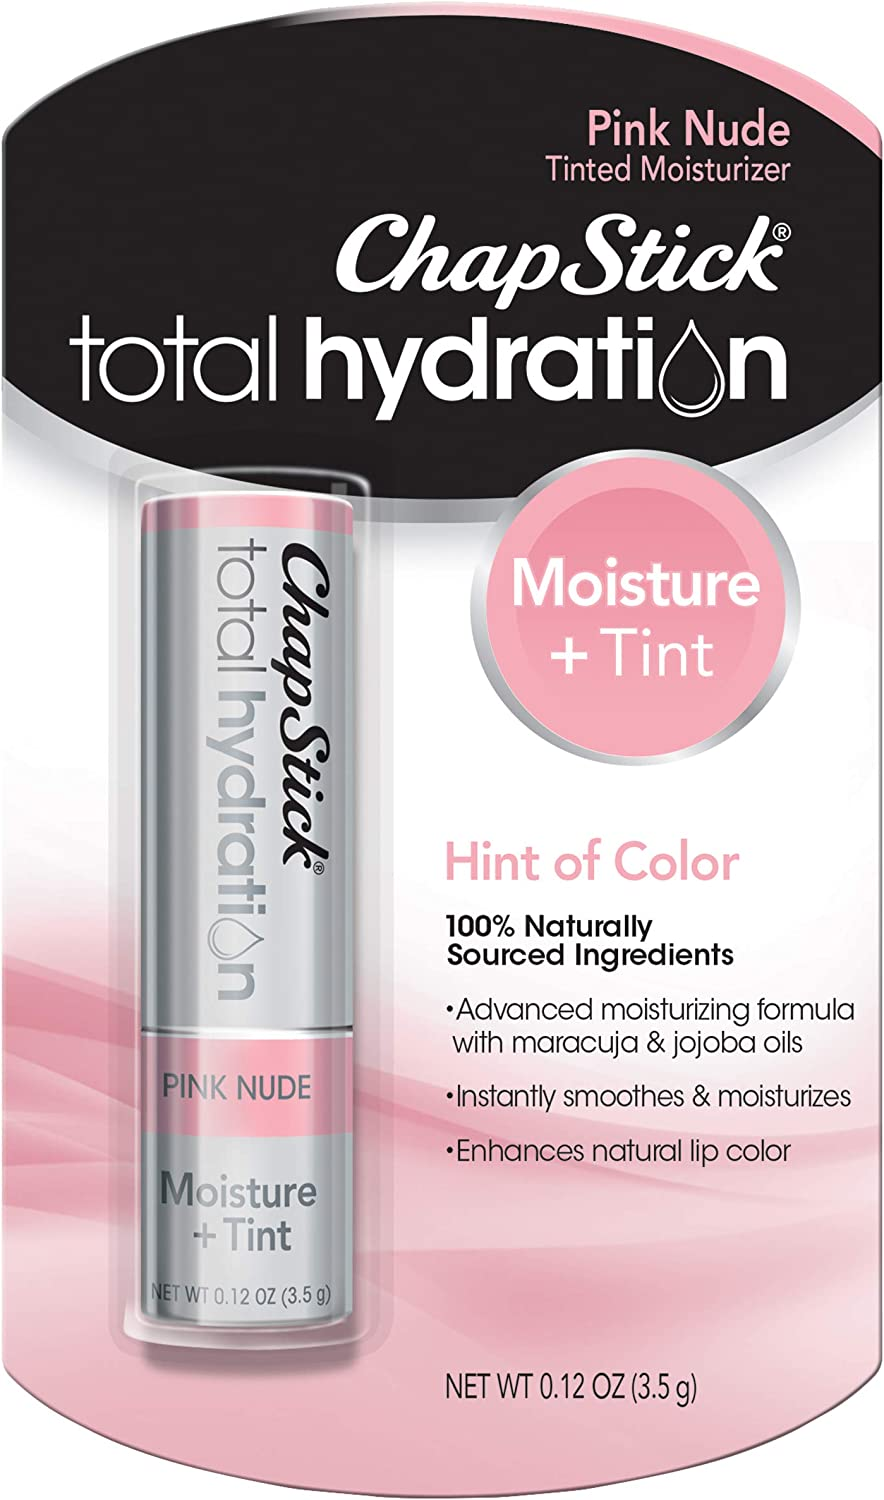 Pink Nude: ChapStick Total Hydration (Pink Nude Tint, 1 Blister Pack of 1 Stick) Tinted Moisturizer, 100% Natural ...